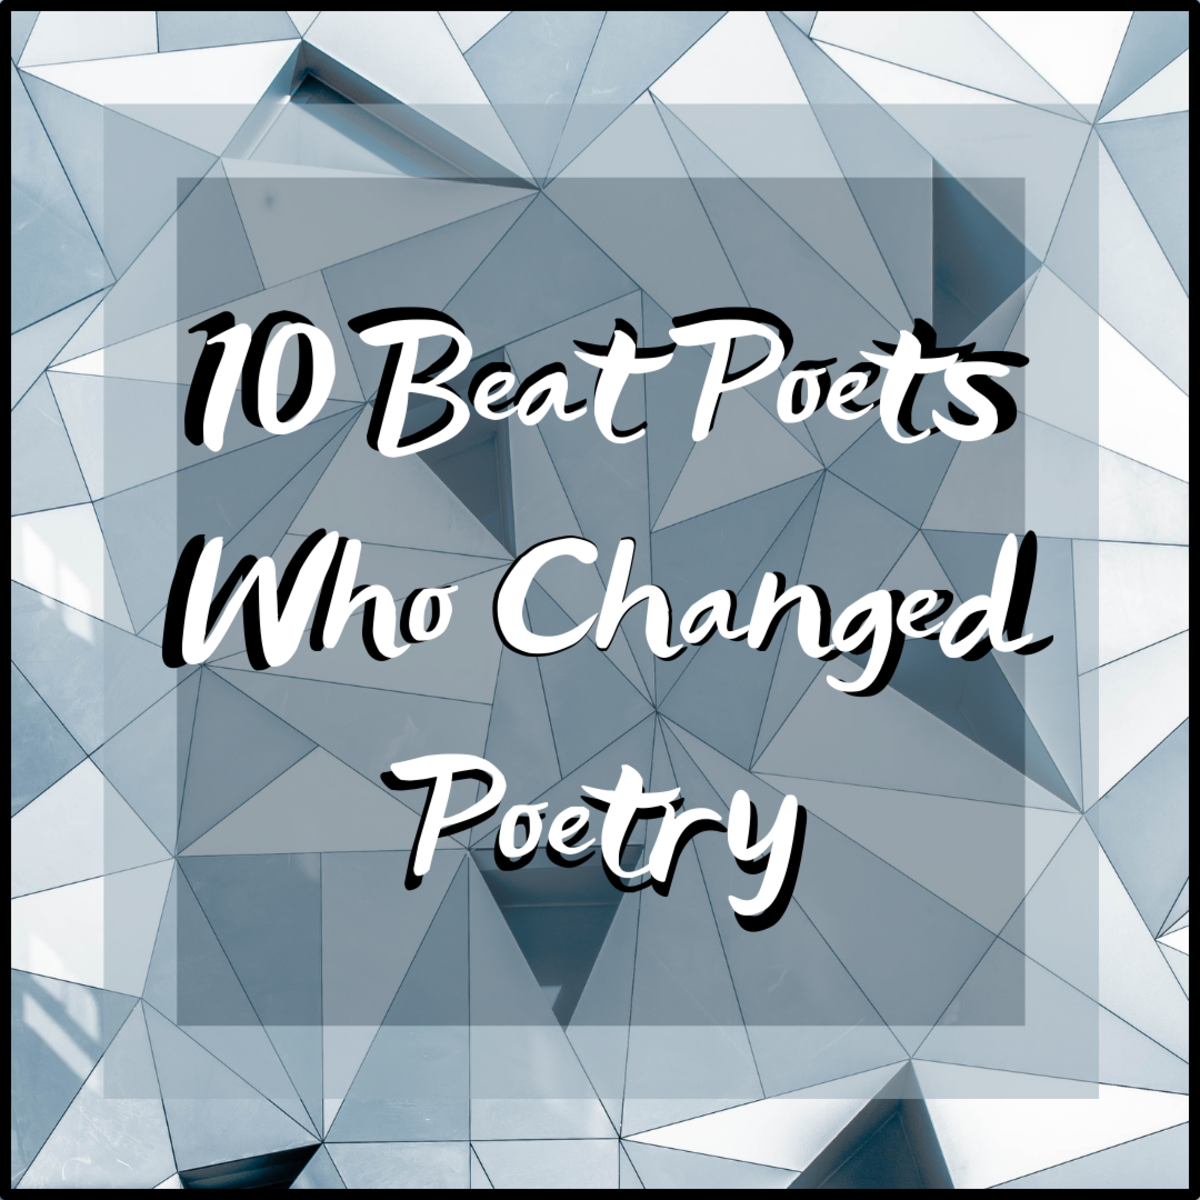 This article presents a top 10 Beat poets list and includes readings and/or excerpts from each poet.